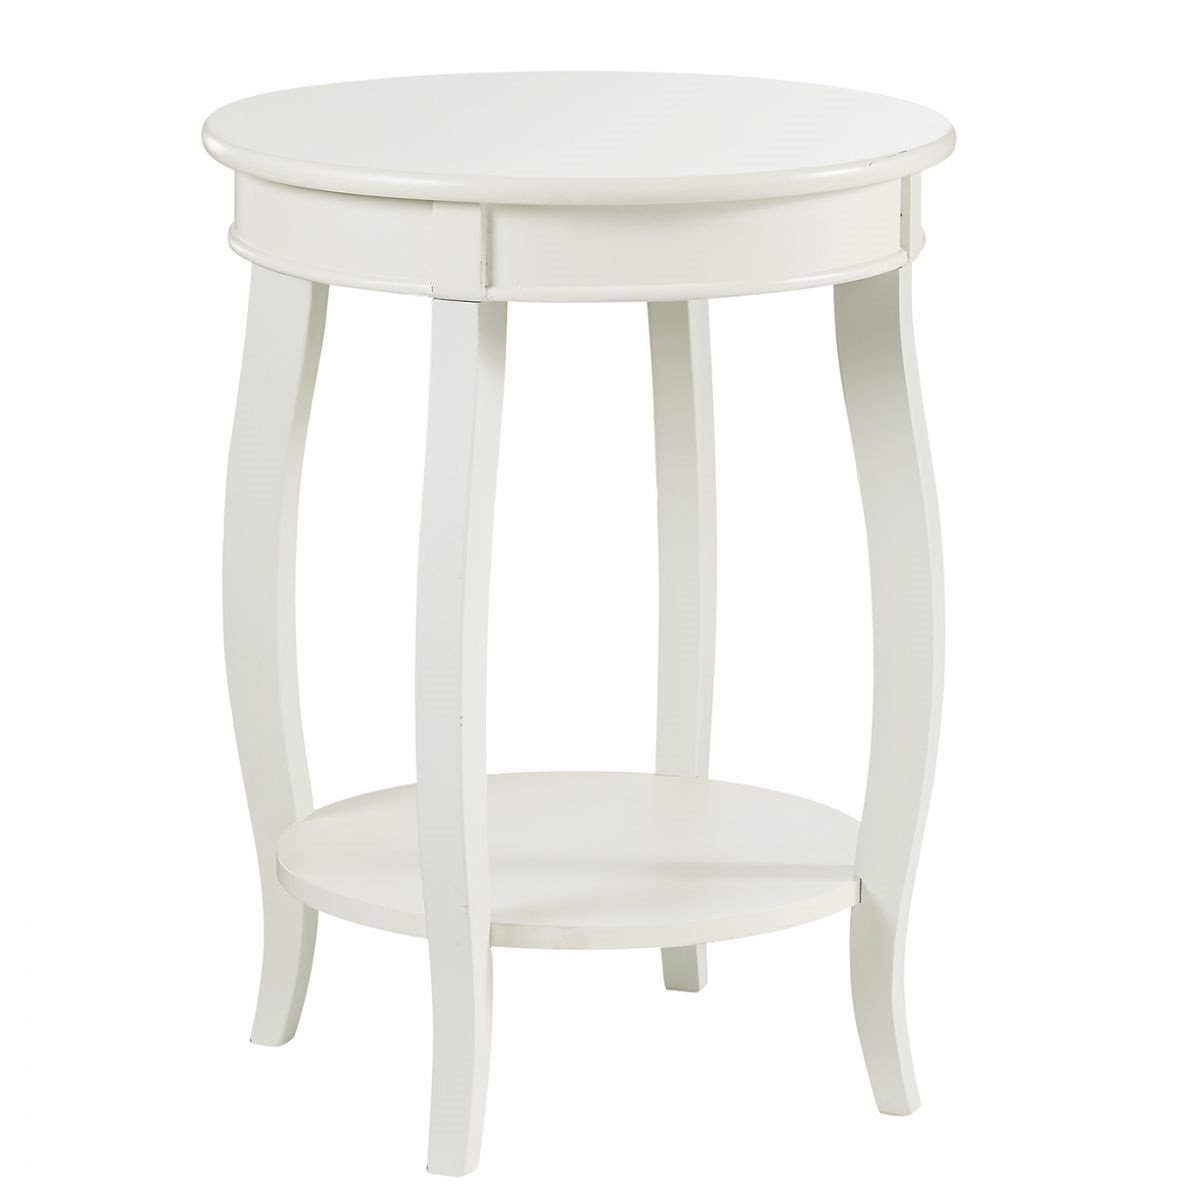 rainbow white round accent table badcock more ture black dining and chairs outdoor glass top side zinc sportcraft ping pong long console behind couch narrow nightstand with